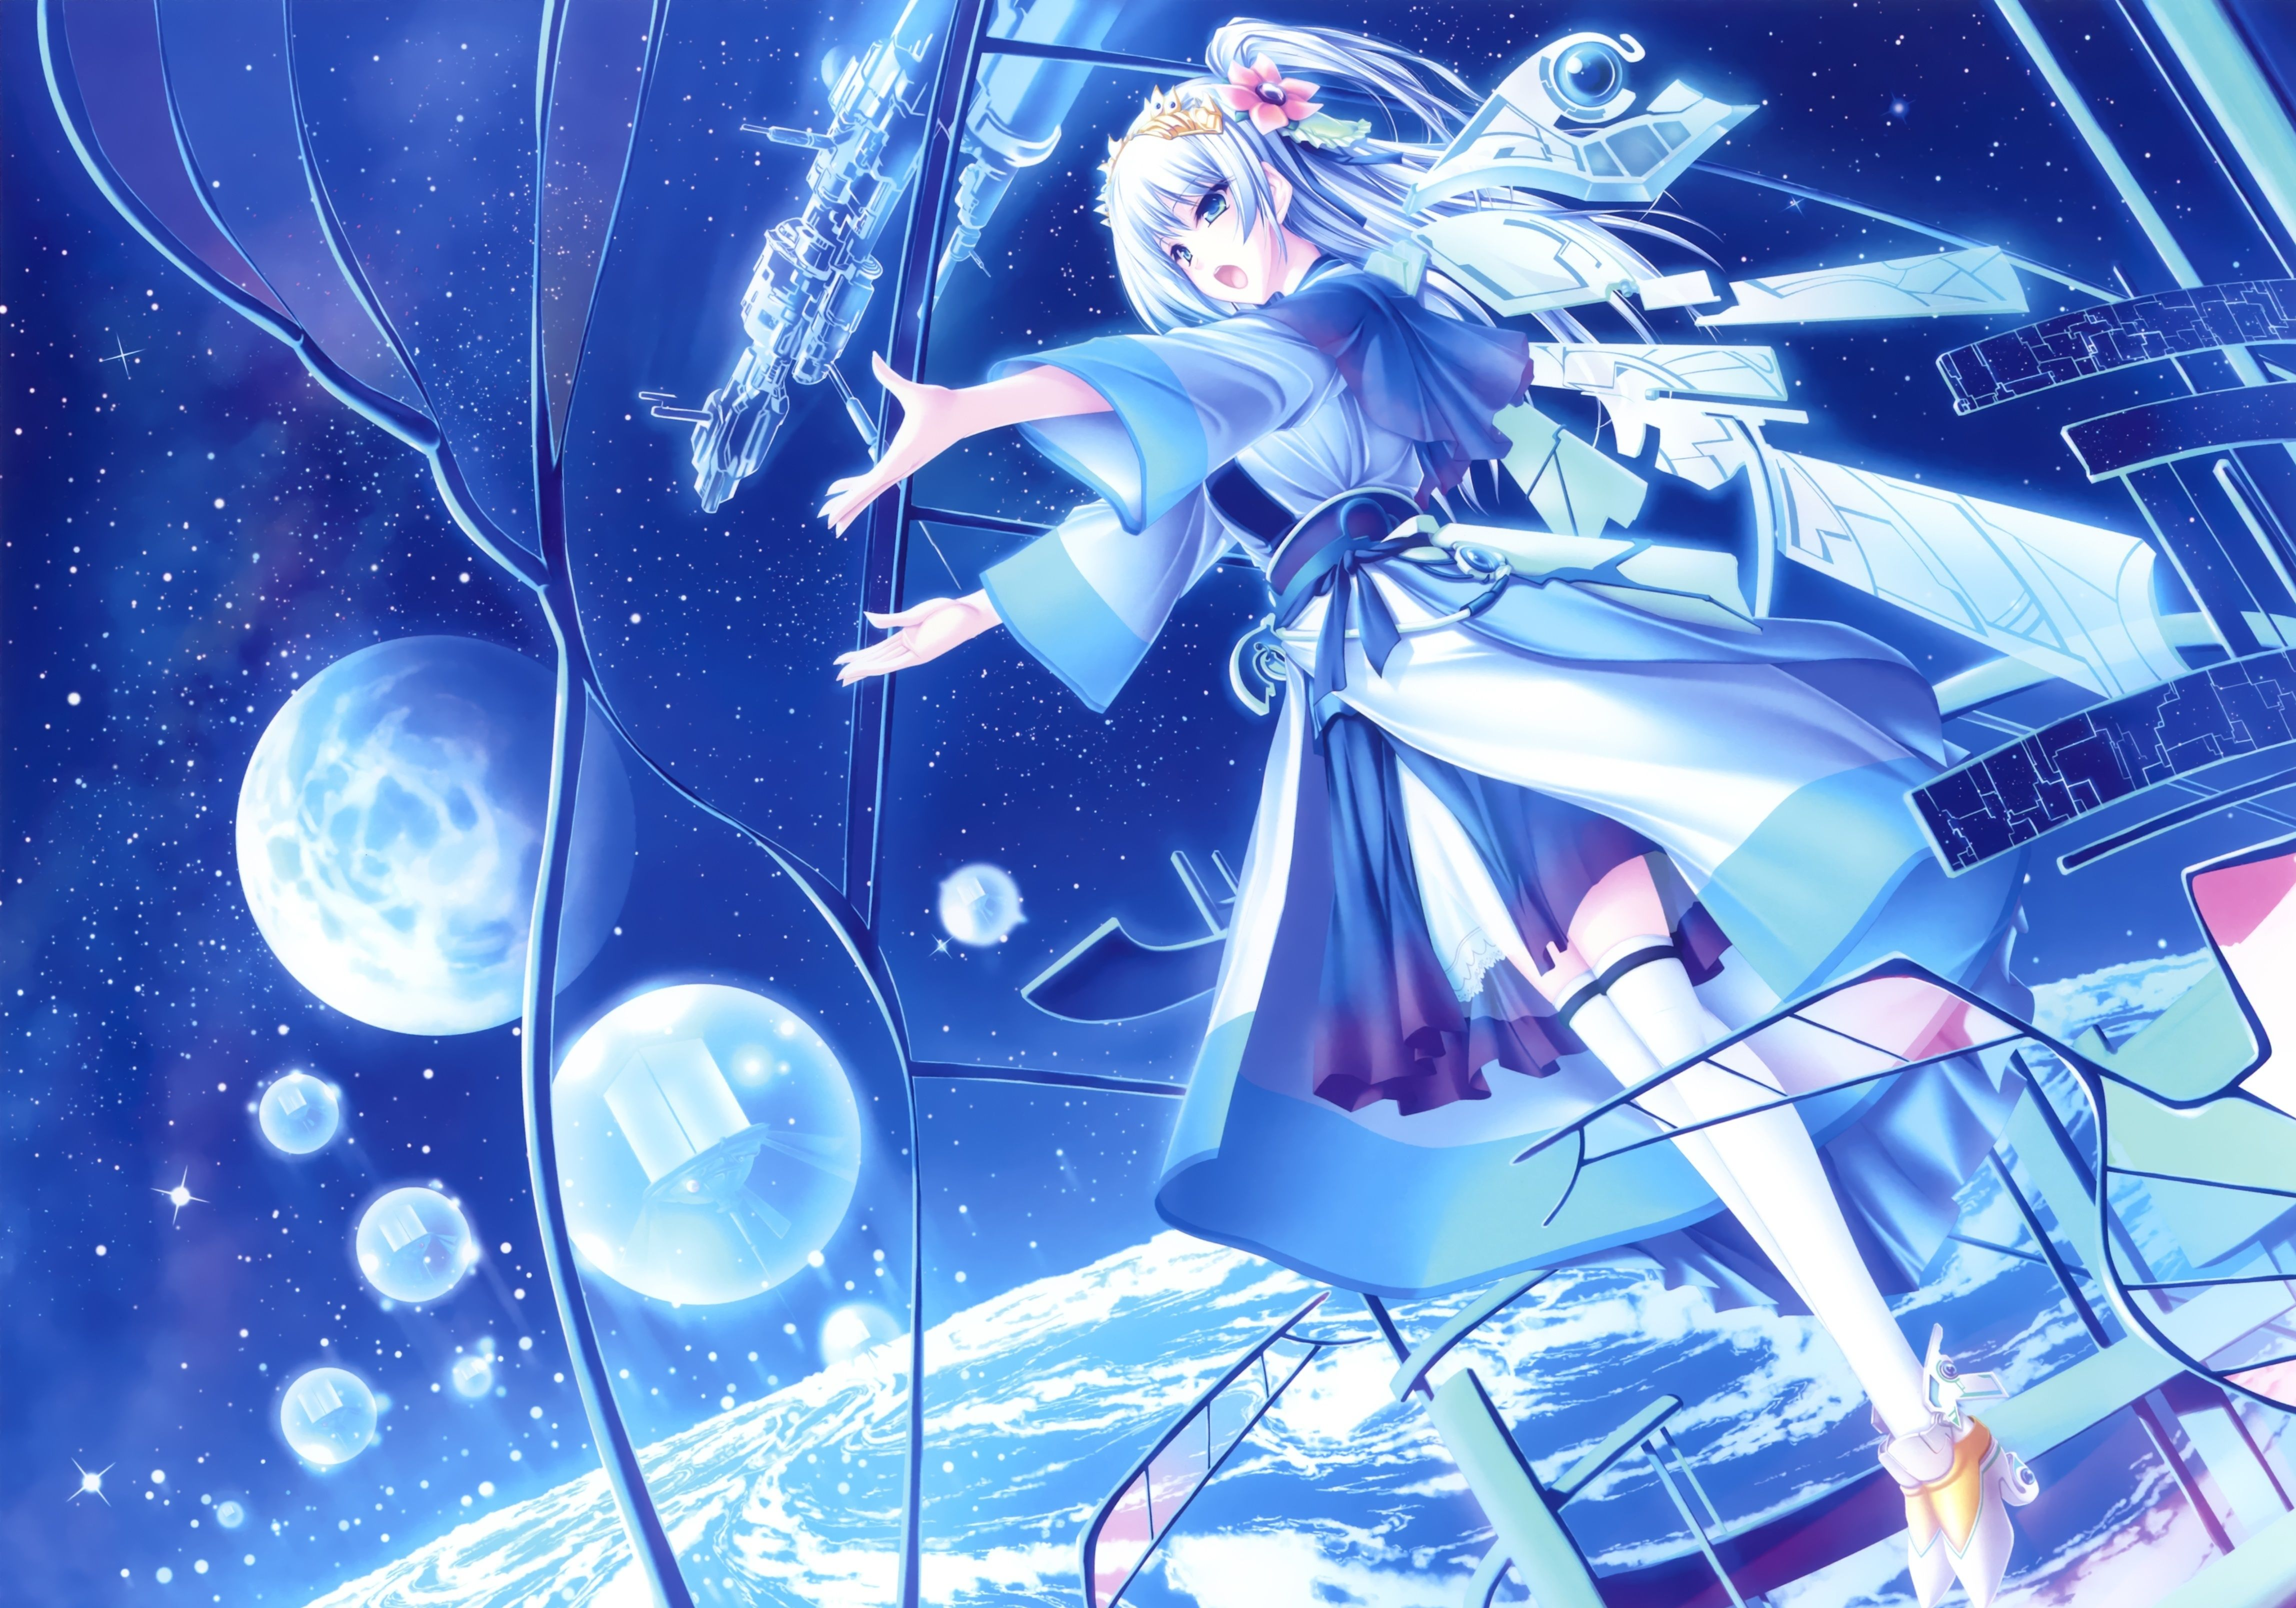 Here we see some beautiful anime wallpapers made by